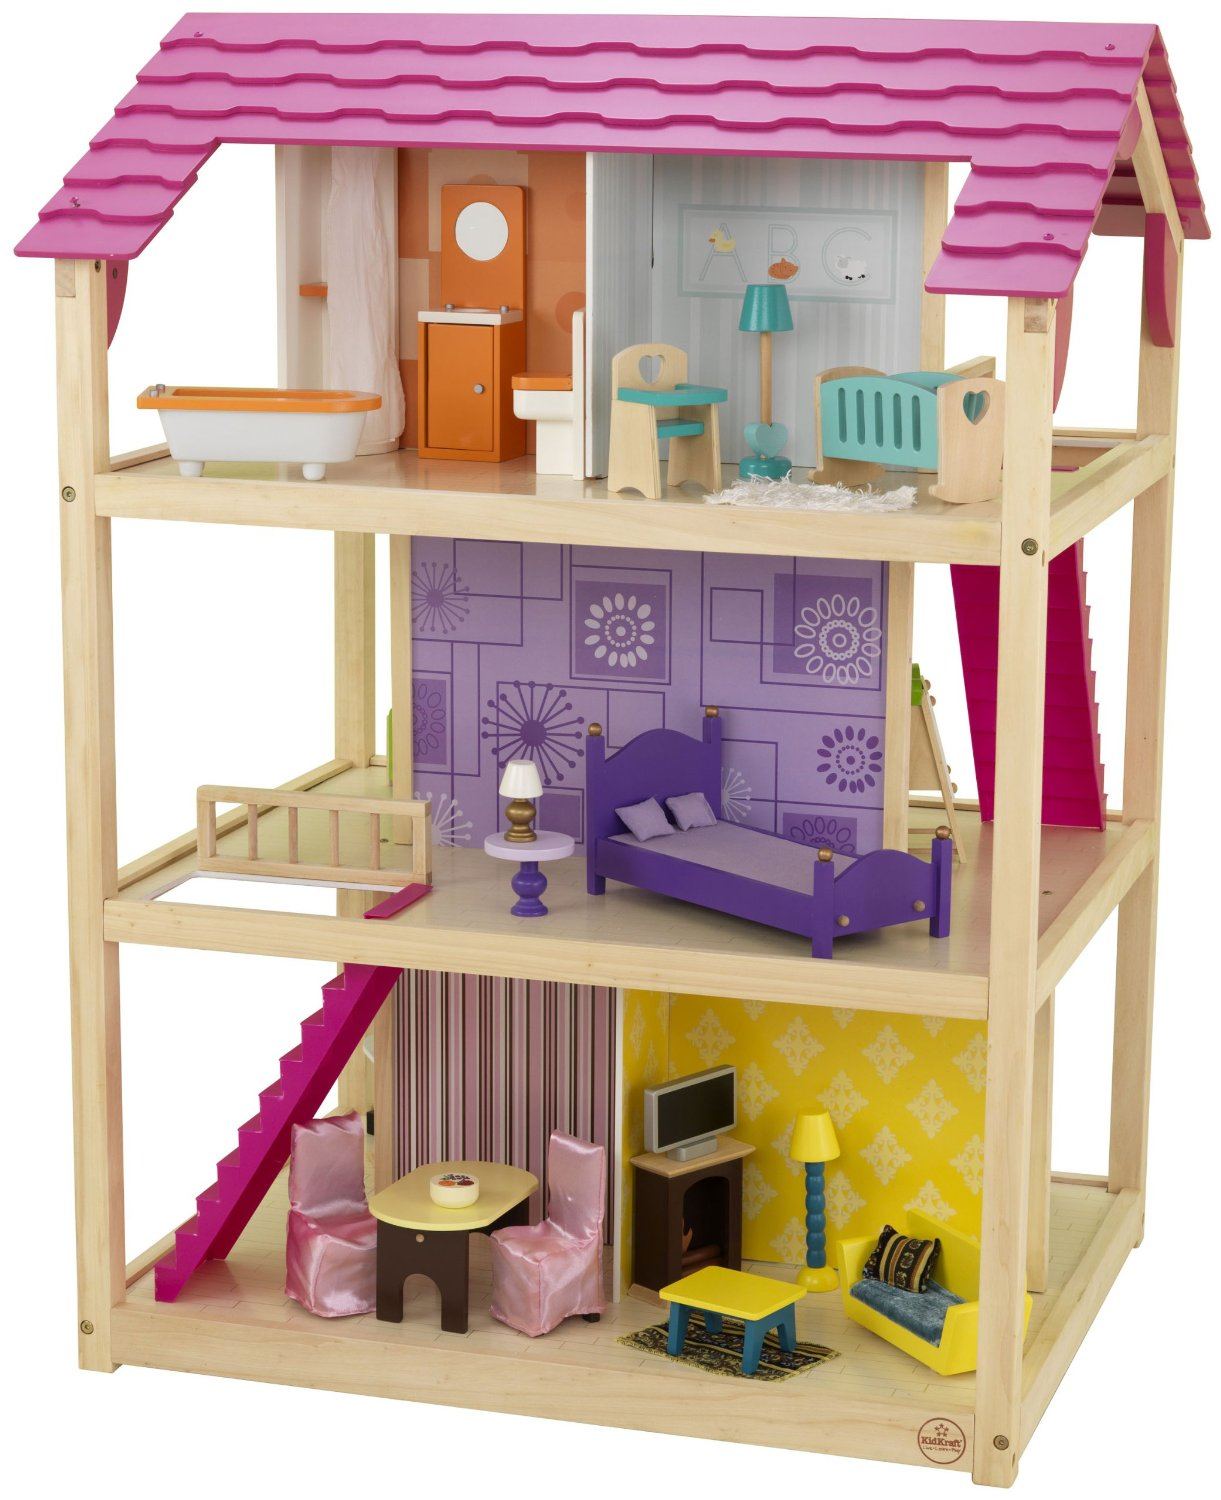 awesome kidkraft dollhouse in triple tier design with pink roof for nursery decoration ideas